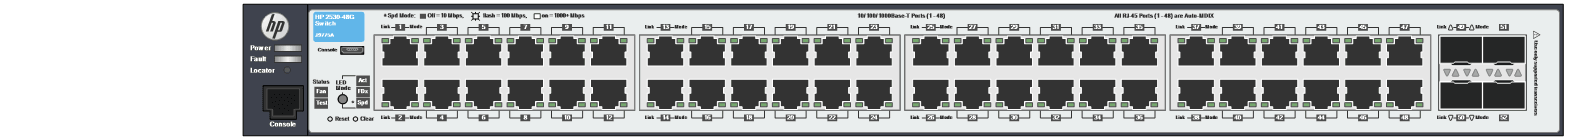 hpe-networking-2xxx-switches_J9775A-2530-48G-Switch